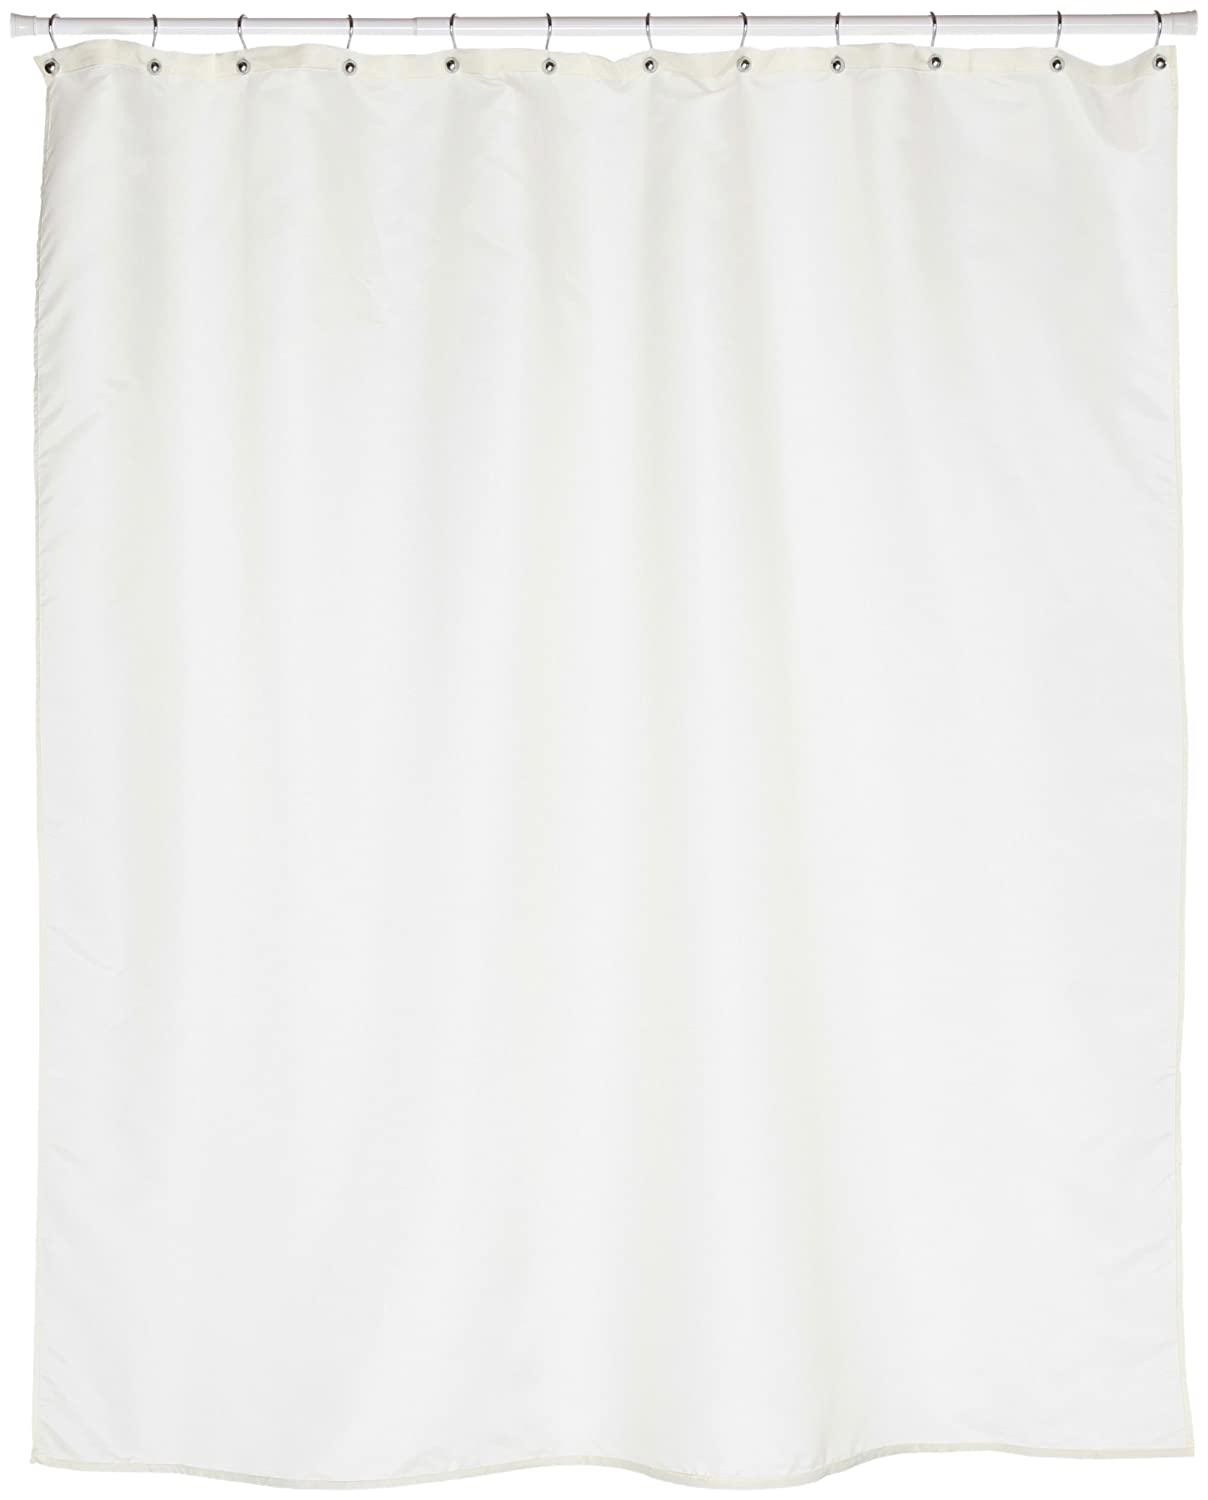 Amazon.com: Carnation Home Fashions Fabric Extra Long Shower ...